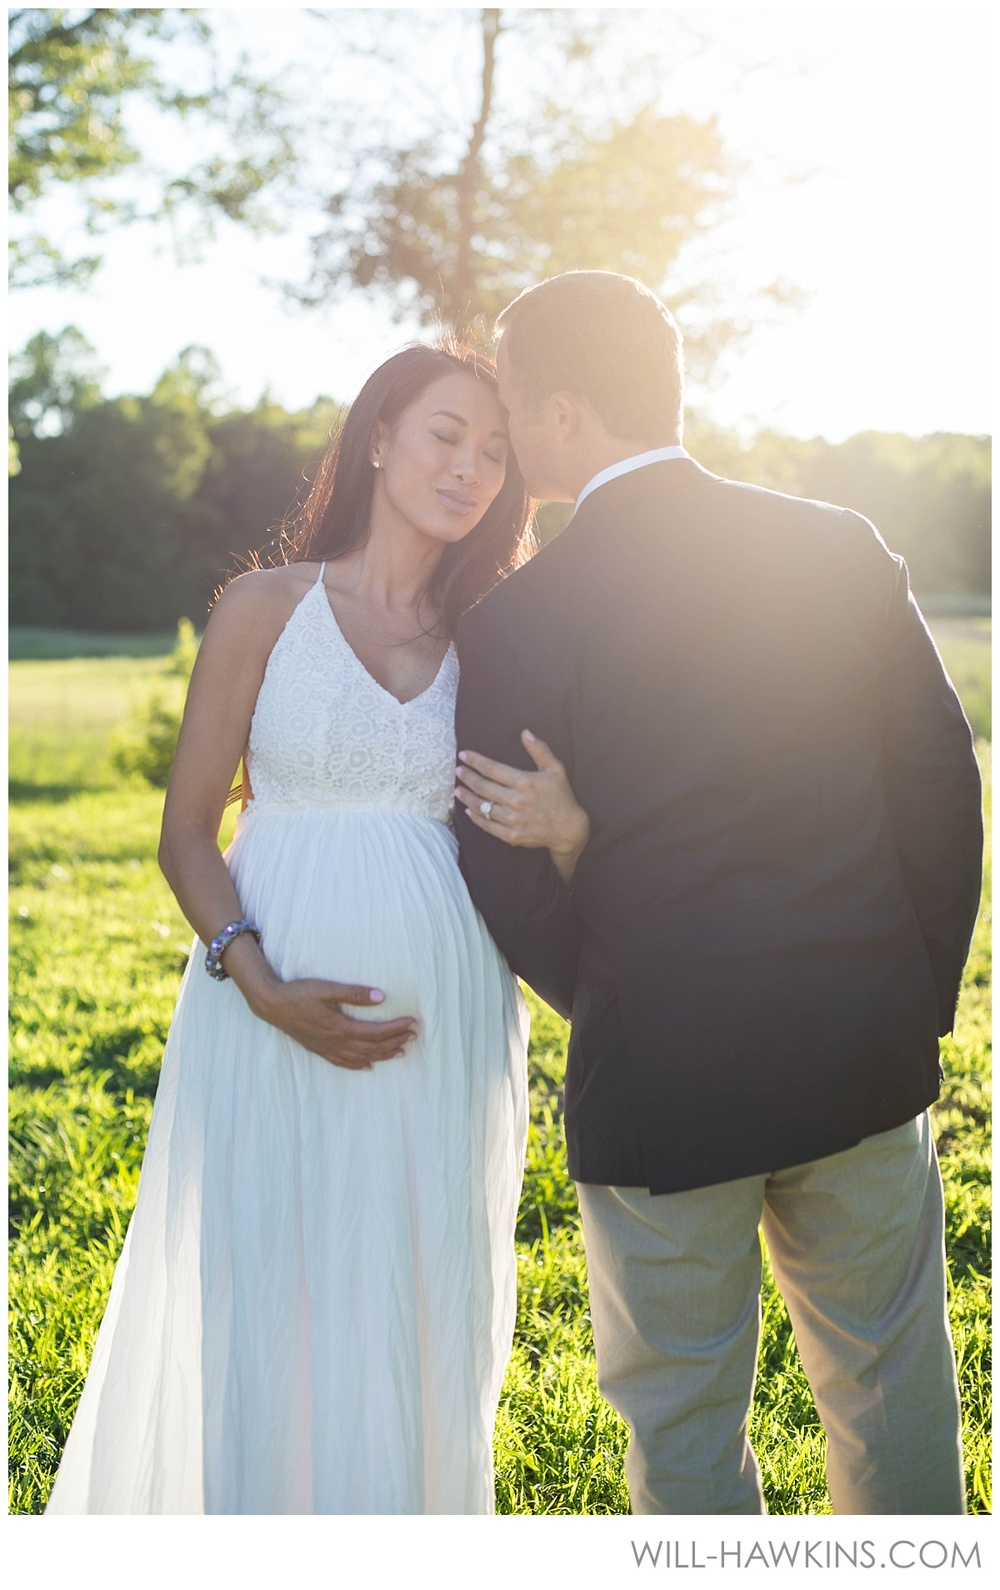 Will Hawkins Photography Virginia Photographer Maternity Photographer Lifestyle Photographer